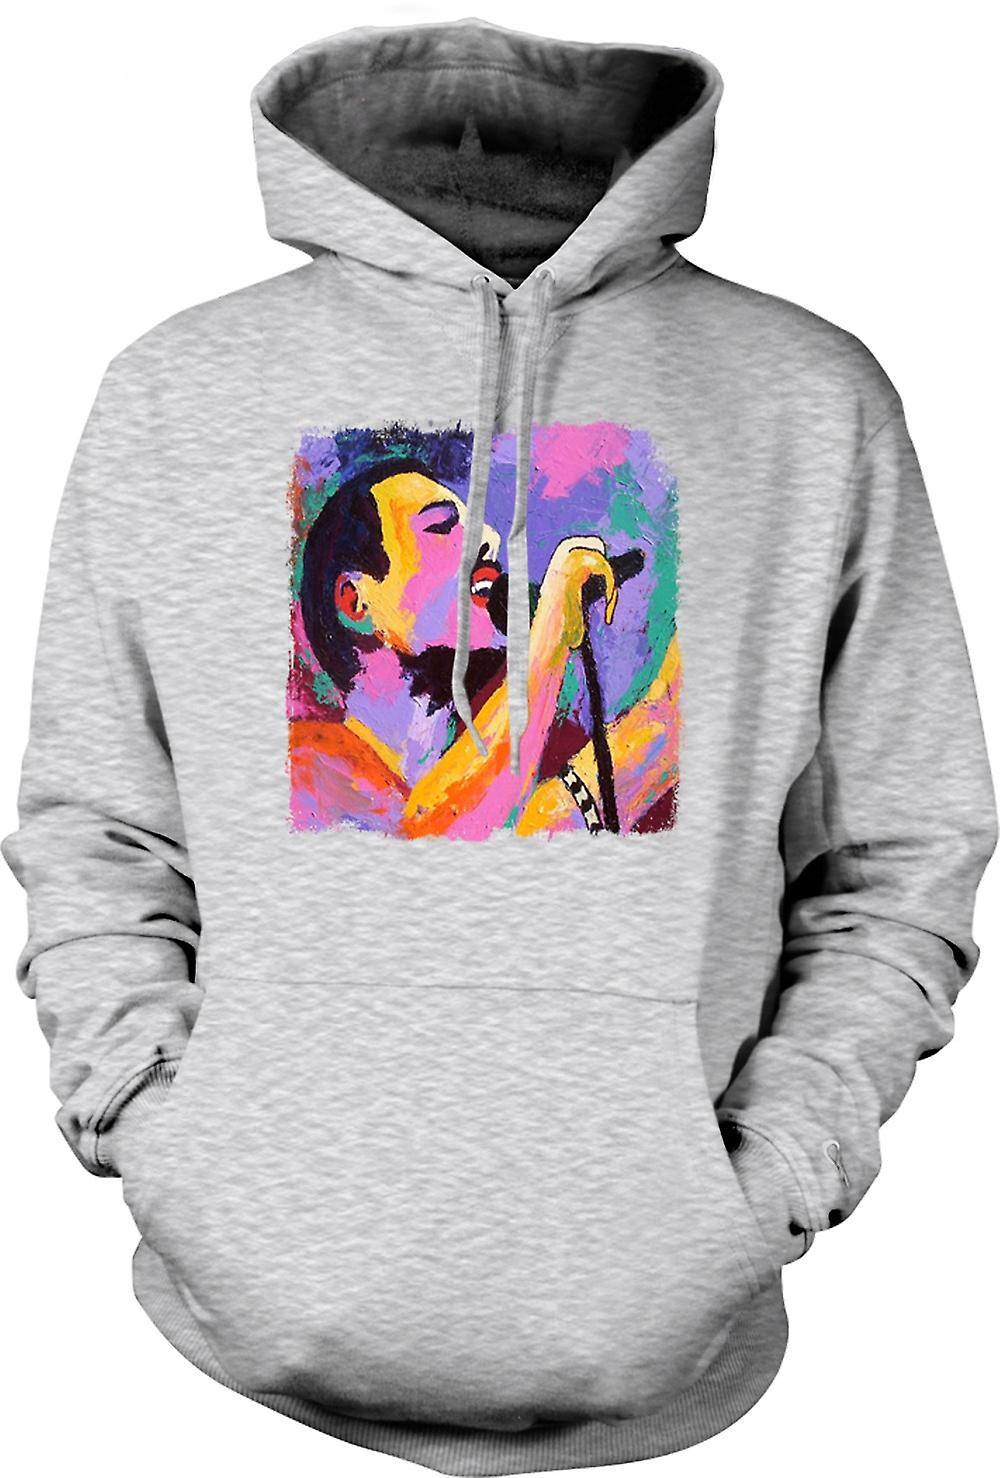 Mens Hoodie - Freddie Mercury - Brush Strokes - Pop Art